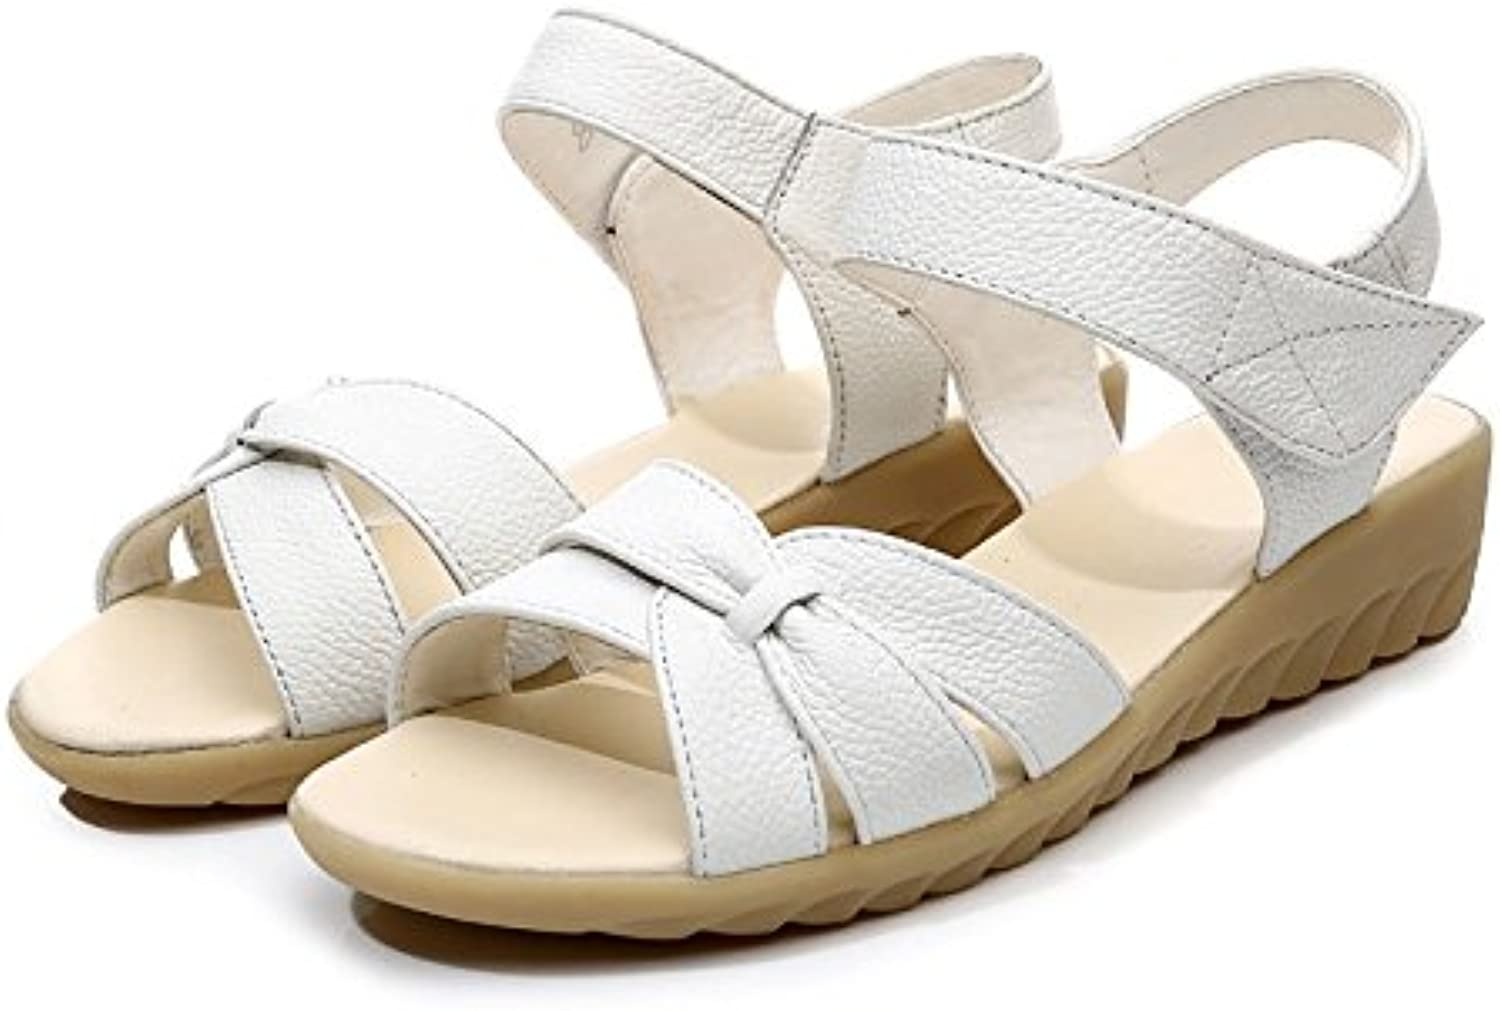 Dahanyi Stylish Plus Size Flat Summer Sandals for Women New Mother shoes Genuine Leather Nurse shoes Flat Maternity shoes Women Sandal